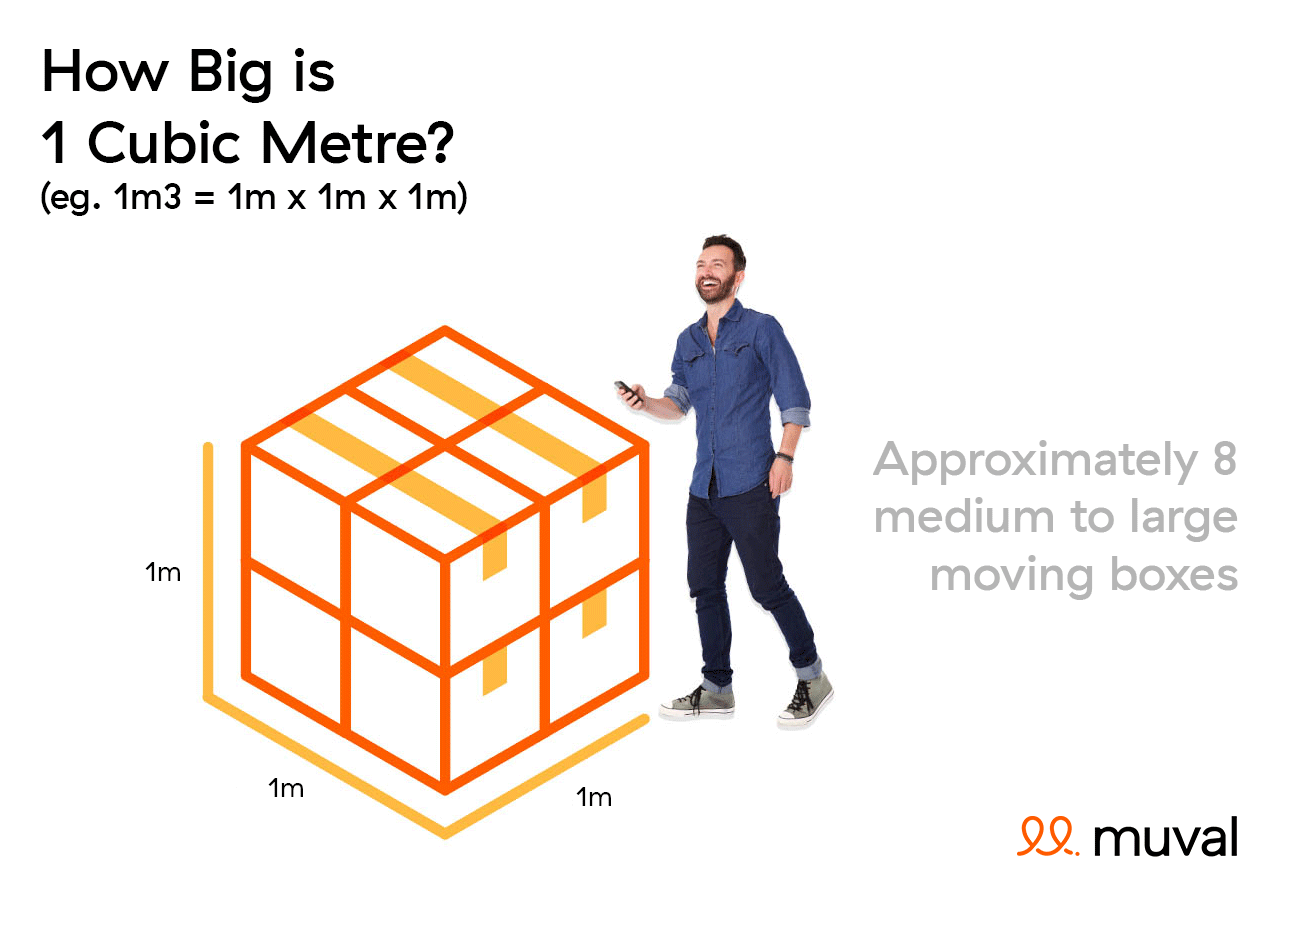 removalists how big is 1 cubic meter